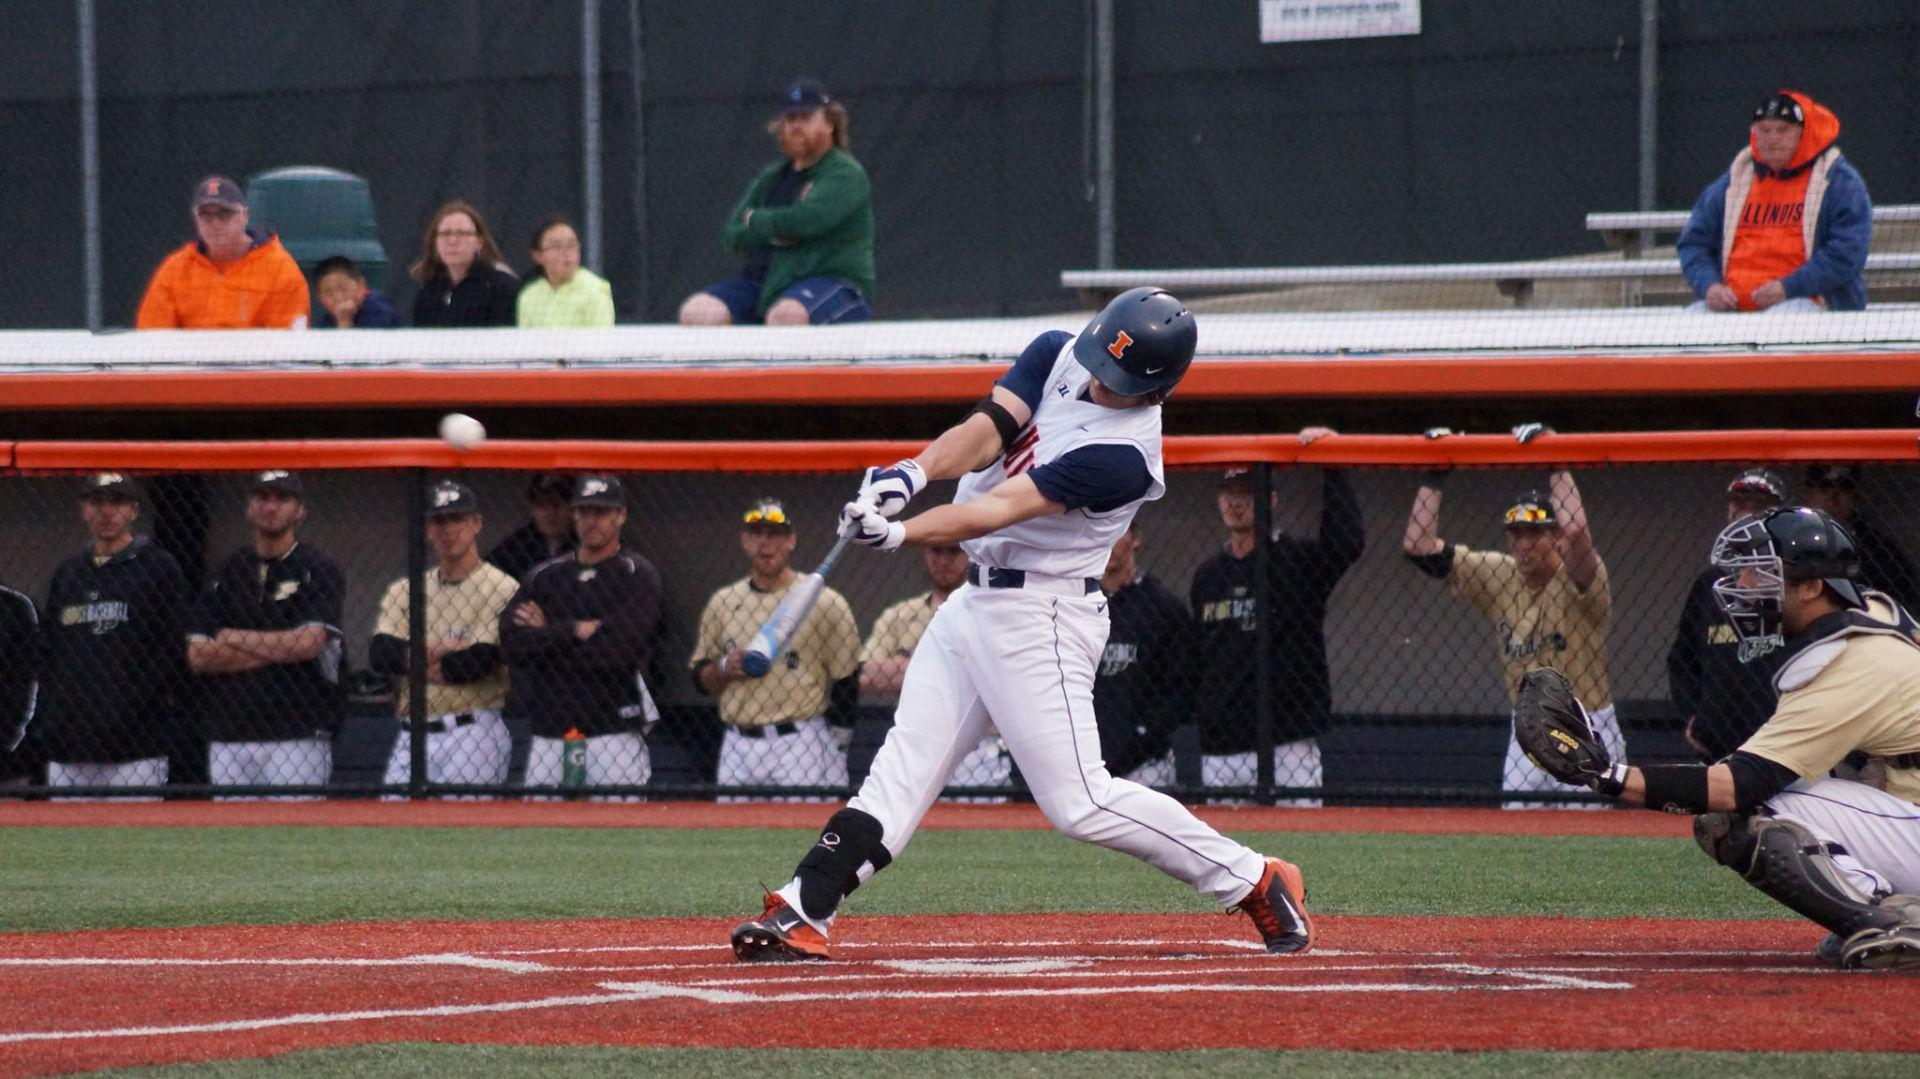 Reid Roper makes a hit during the game against Purdue at Illinois Field on Monday. Roper led off the fourth inning with his second triple of the season, tying the game. The close finish secured the team's best start in franchise history.